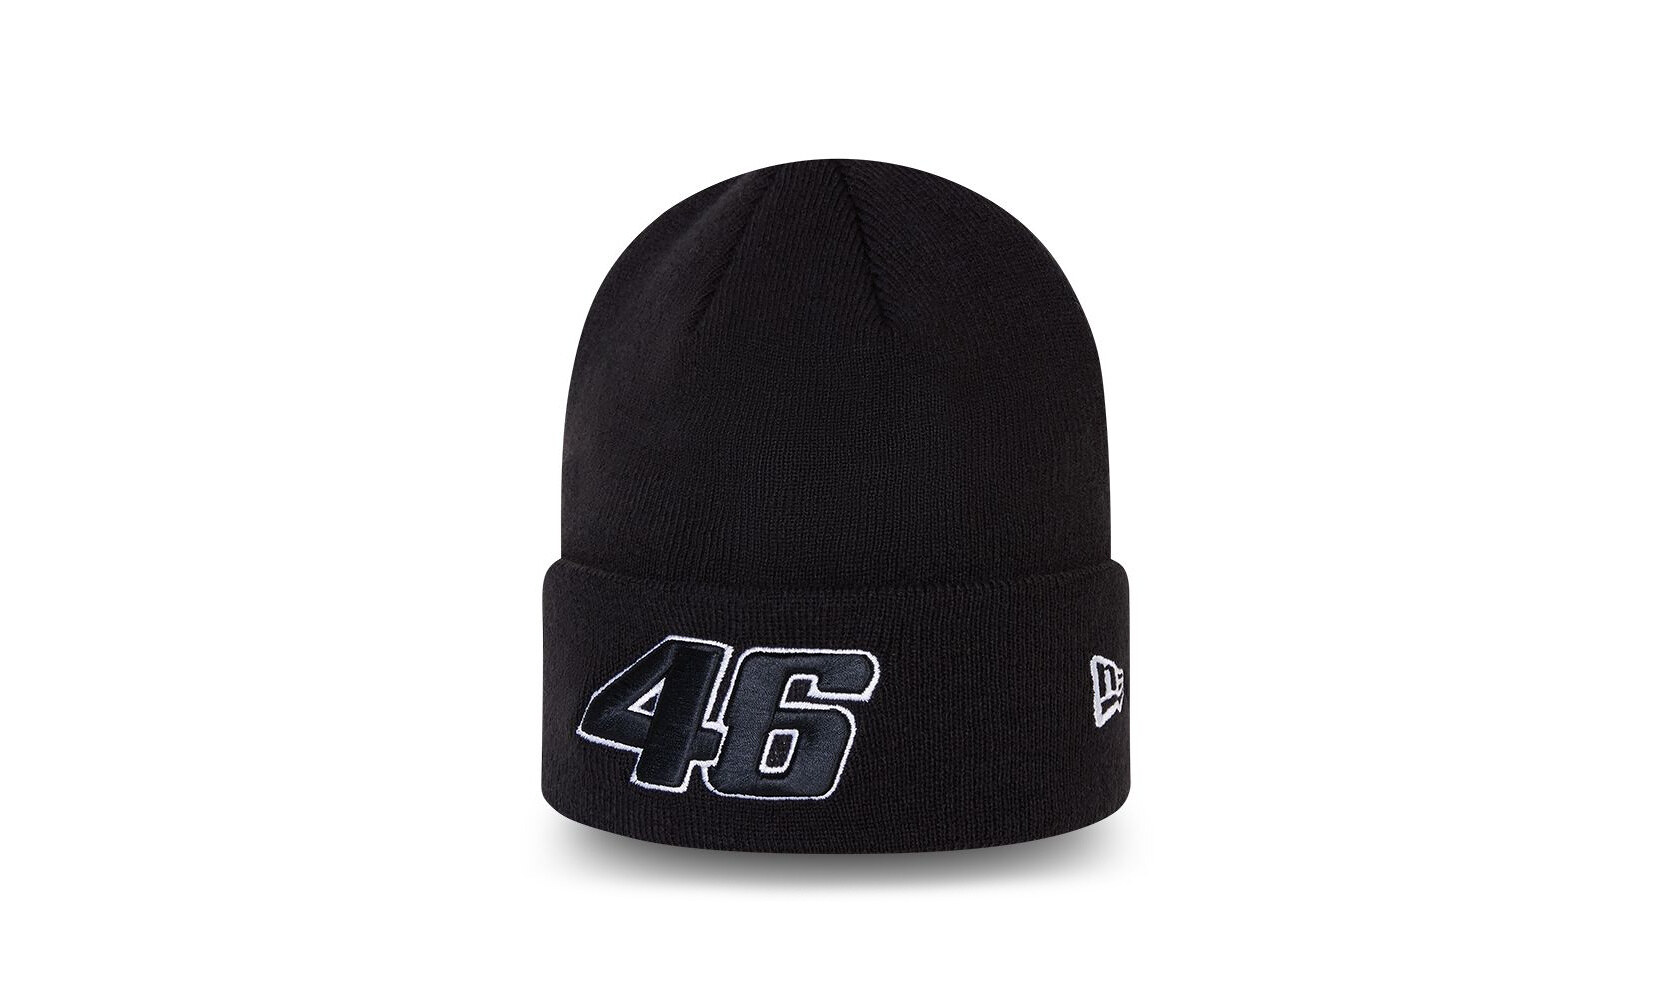 New Era x Valentino Rossi 46